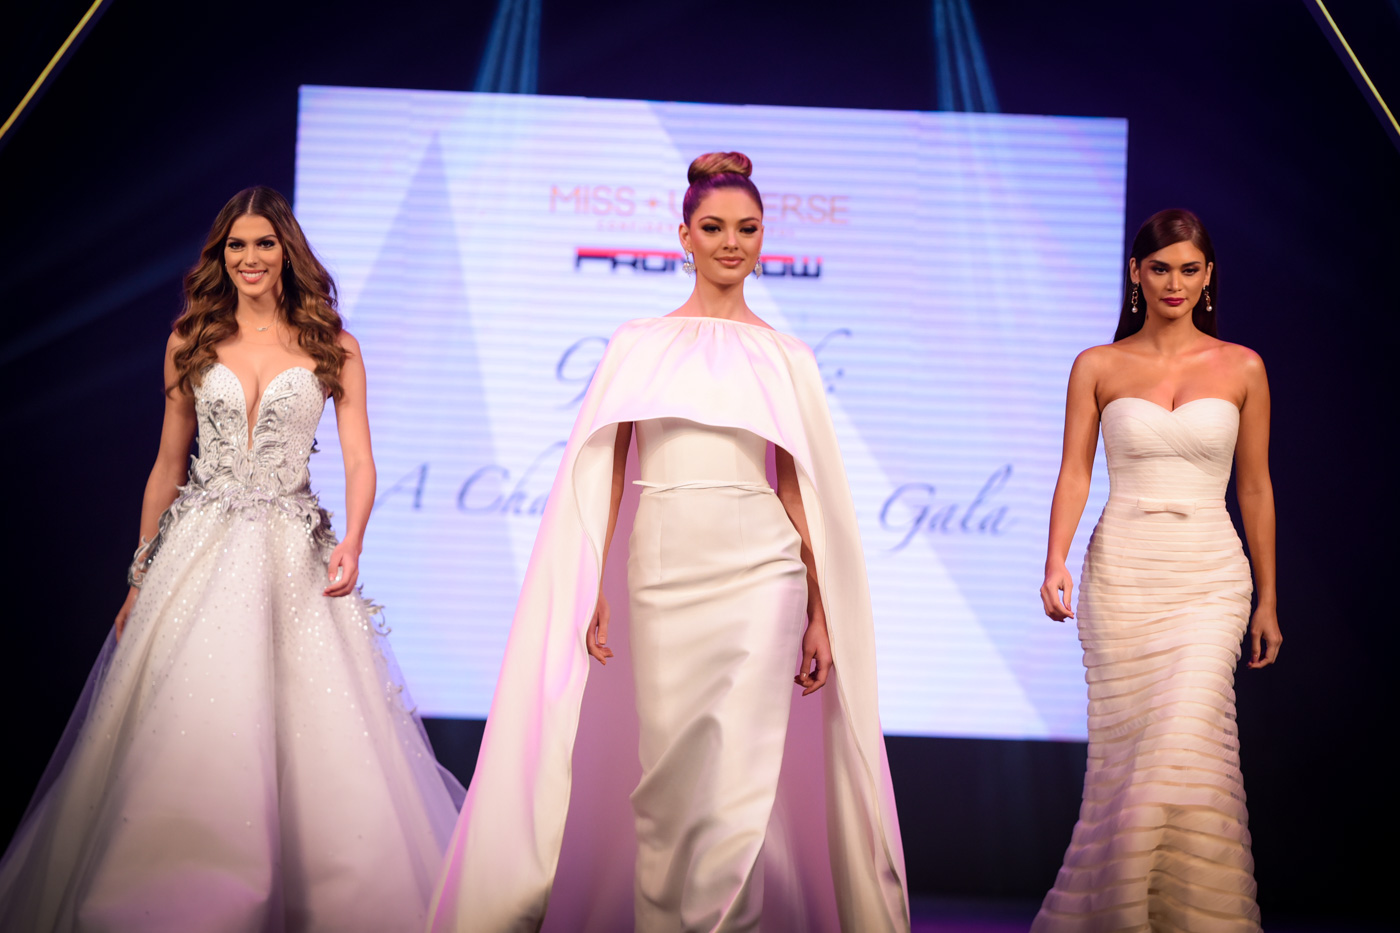 Miss Universe 2016 Iris Mittenaere, Miss Universe 2017 Demi-Leigh Nel-Peters, and Miss Universe 2015 Pia Wurtzbach during the Front Row Fashion show for a cause.  Photo by Alecs Ongcal/Rappler